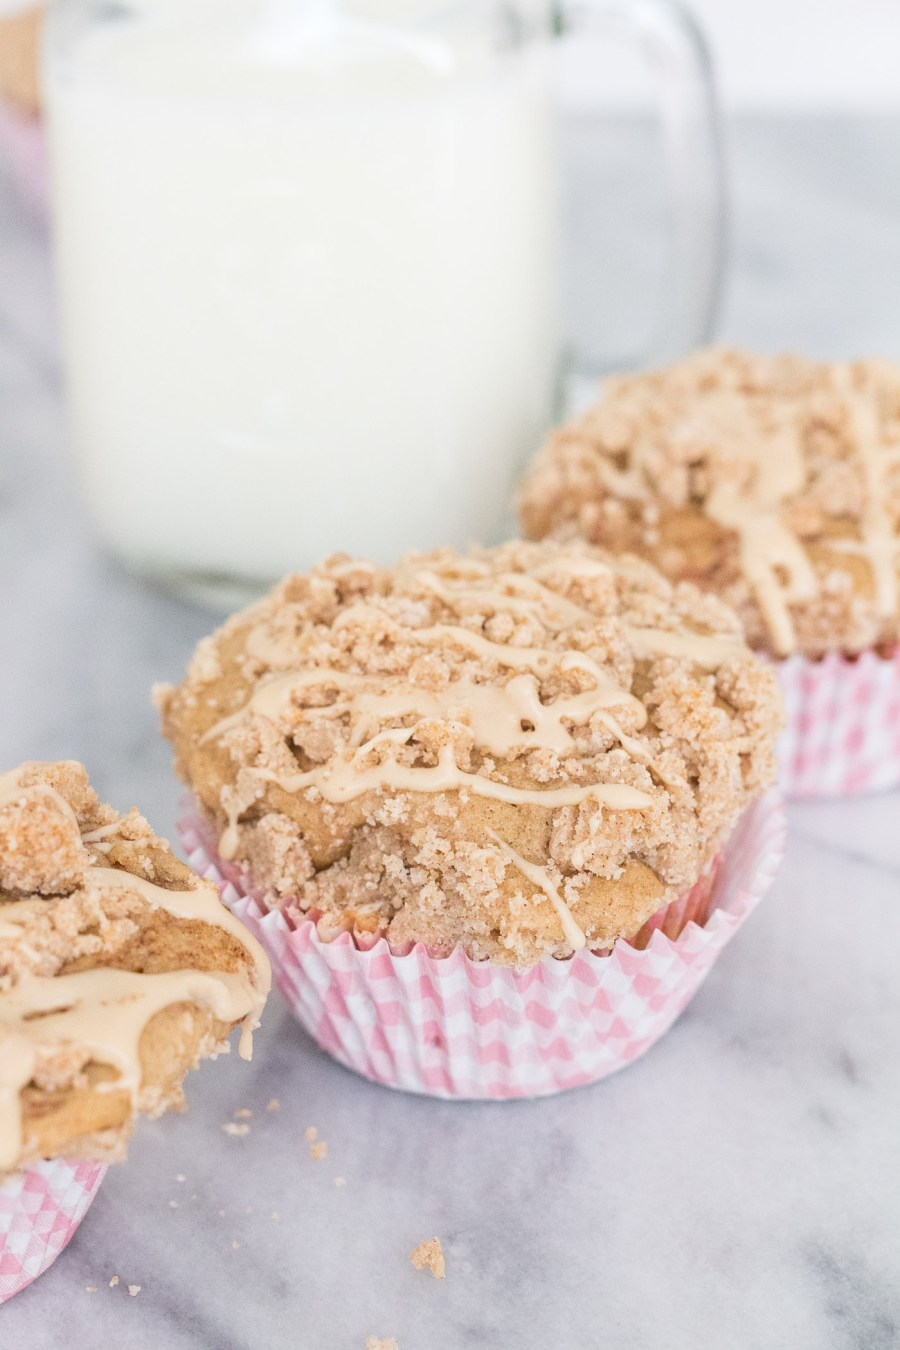 Brown Butter Coffee Cake Muffins with Almond Glaze, Easter recipe, brunch recipe, Treats and Trends